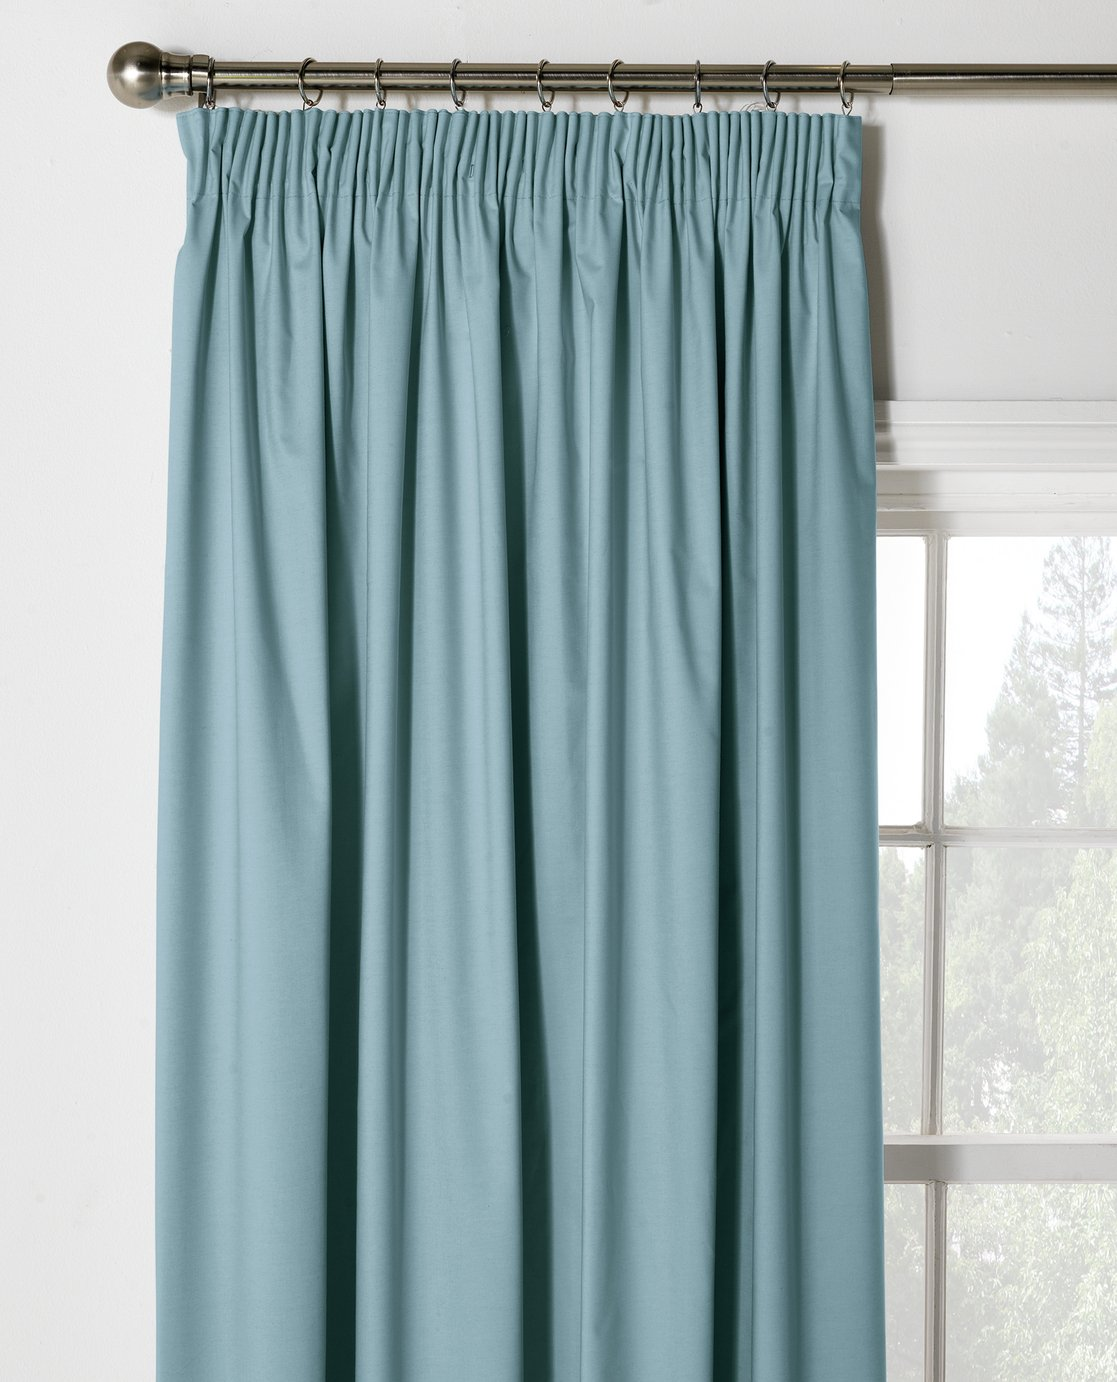 thermal curtains available from. Black Bedroom Furniture Sets. Home Design Ideas